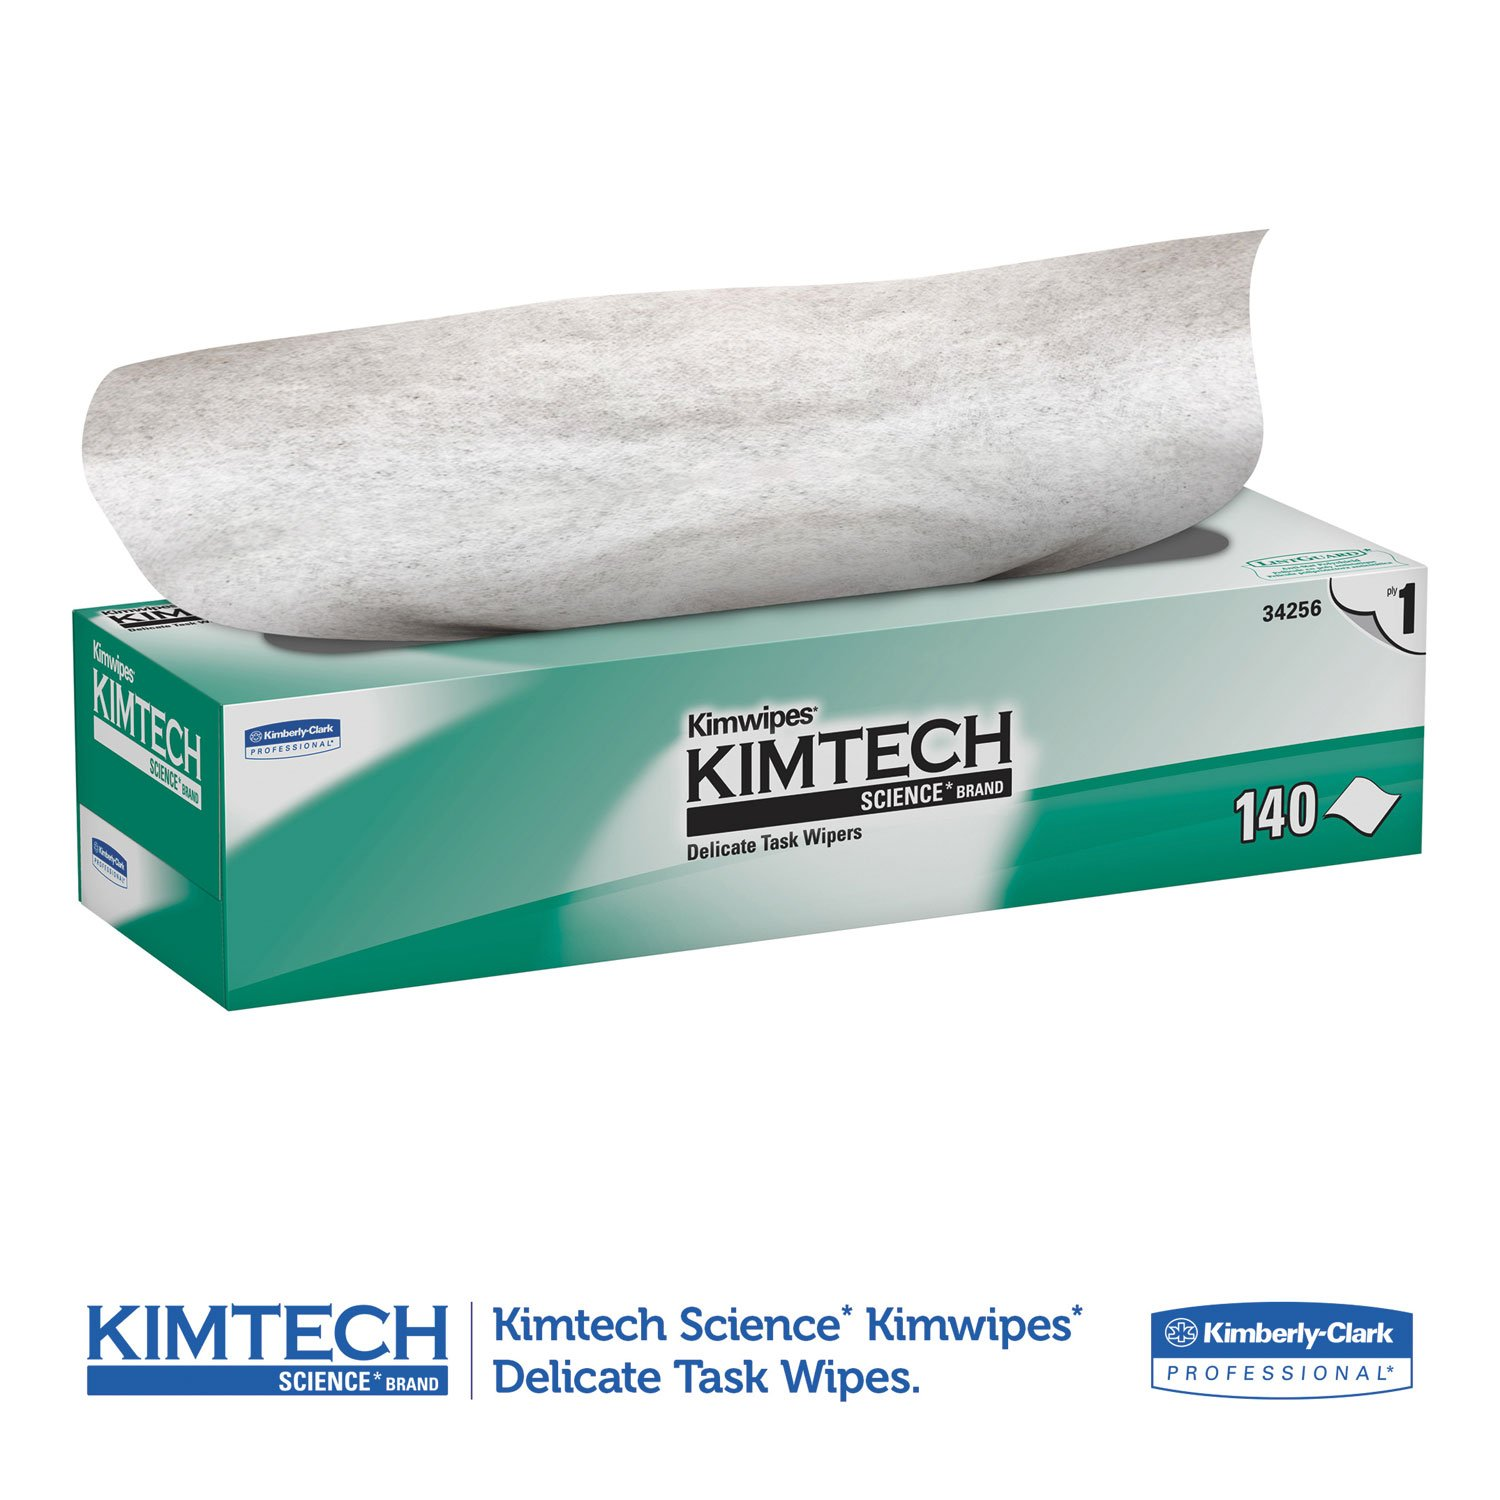 Kimtech 34256CT KIMWIPES Delicate Task Wipers, 1-Ply, 14 7/10 x 16 3/5, 140/Box, 15 Boxes/Carton